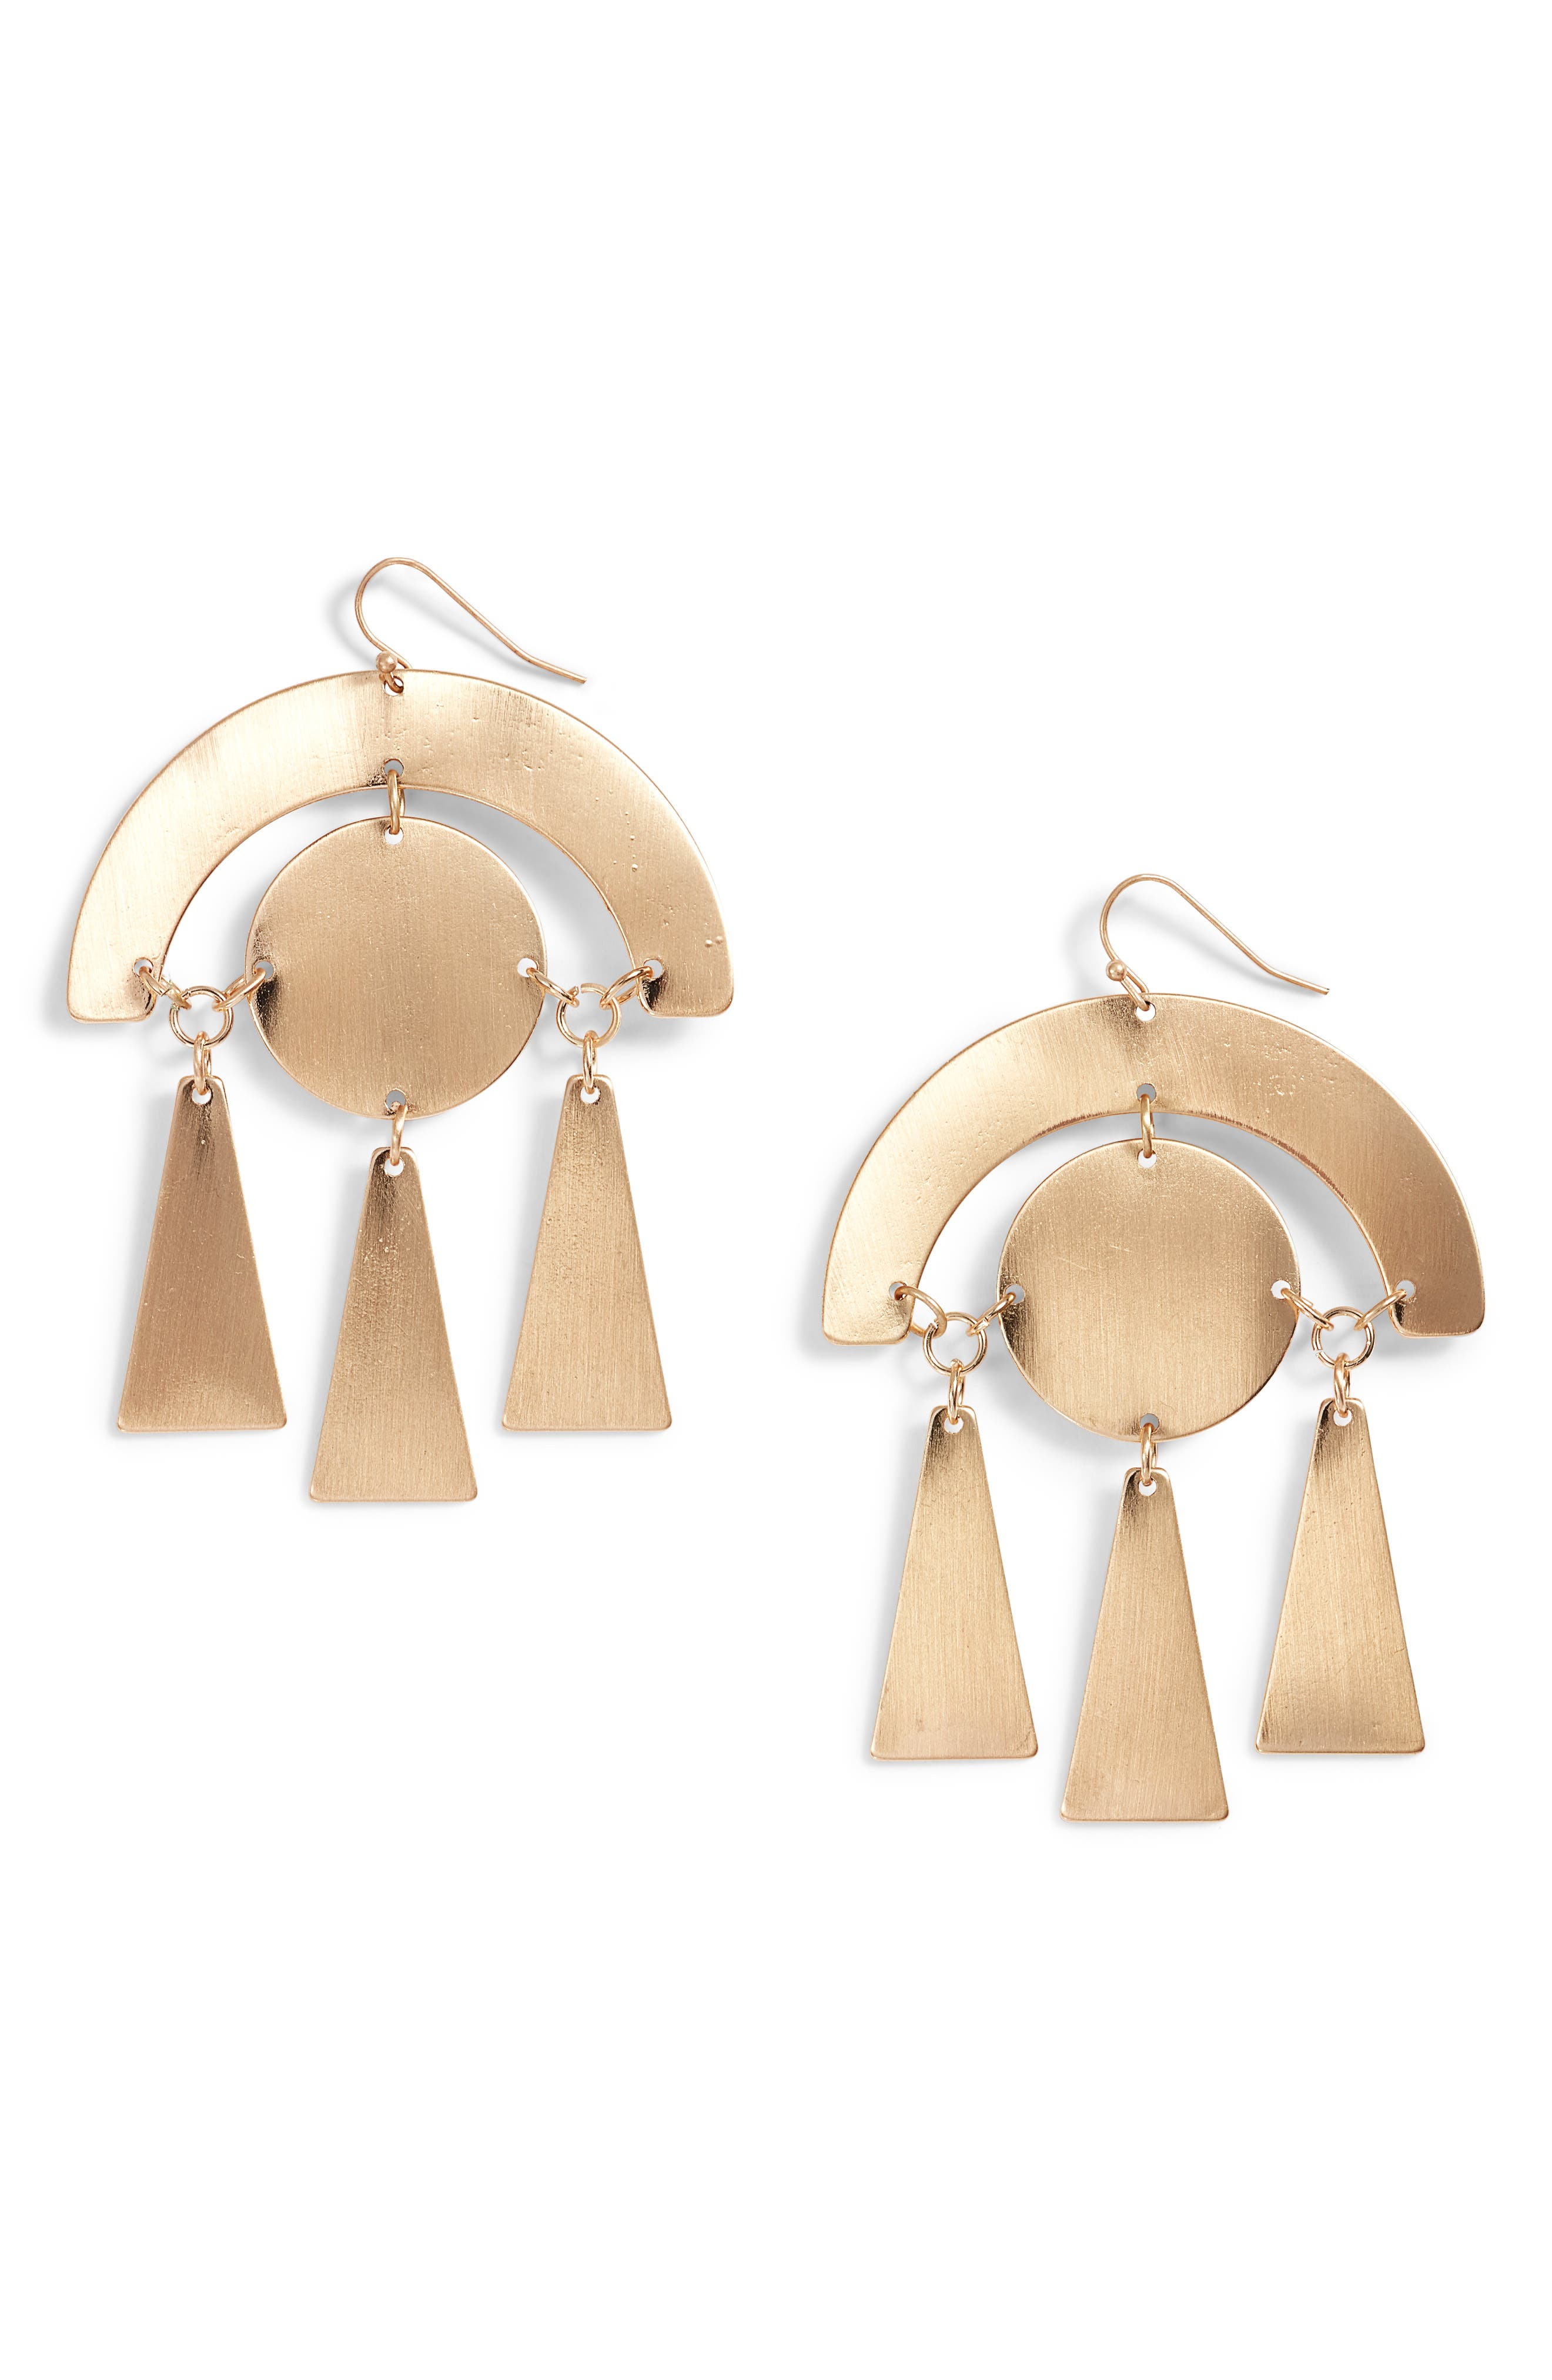 Geo Drop Earrings,                             Main thumbnail 1, color,                             Antique Gold